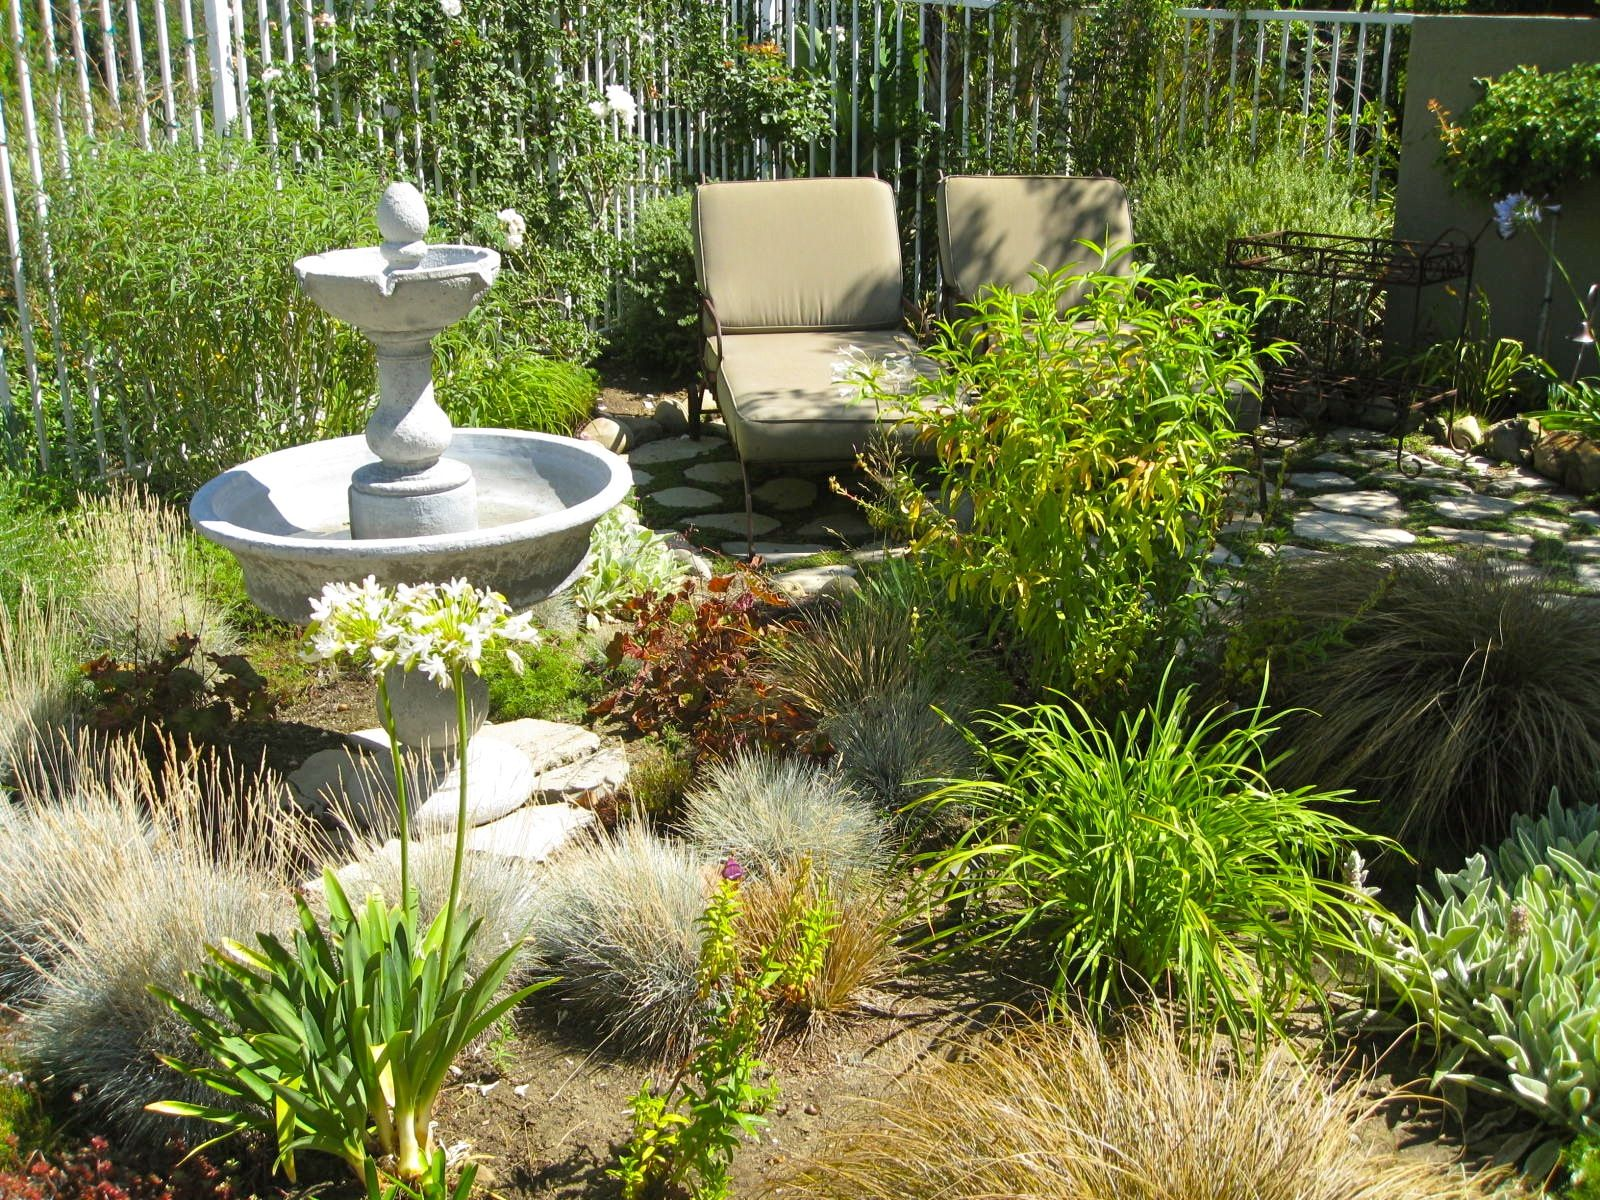 Backyard Garden Design Ideas best 25 backyard garden design ideas on pinterest backyard garden landscape backyard garden ideas and front yard landscaping Find This Pin And More On For The Back Garden Exterior Garden Designers Roundtable No Lawn Backyard Makeover Outdoor Awesome Backyard Design Ideas